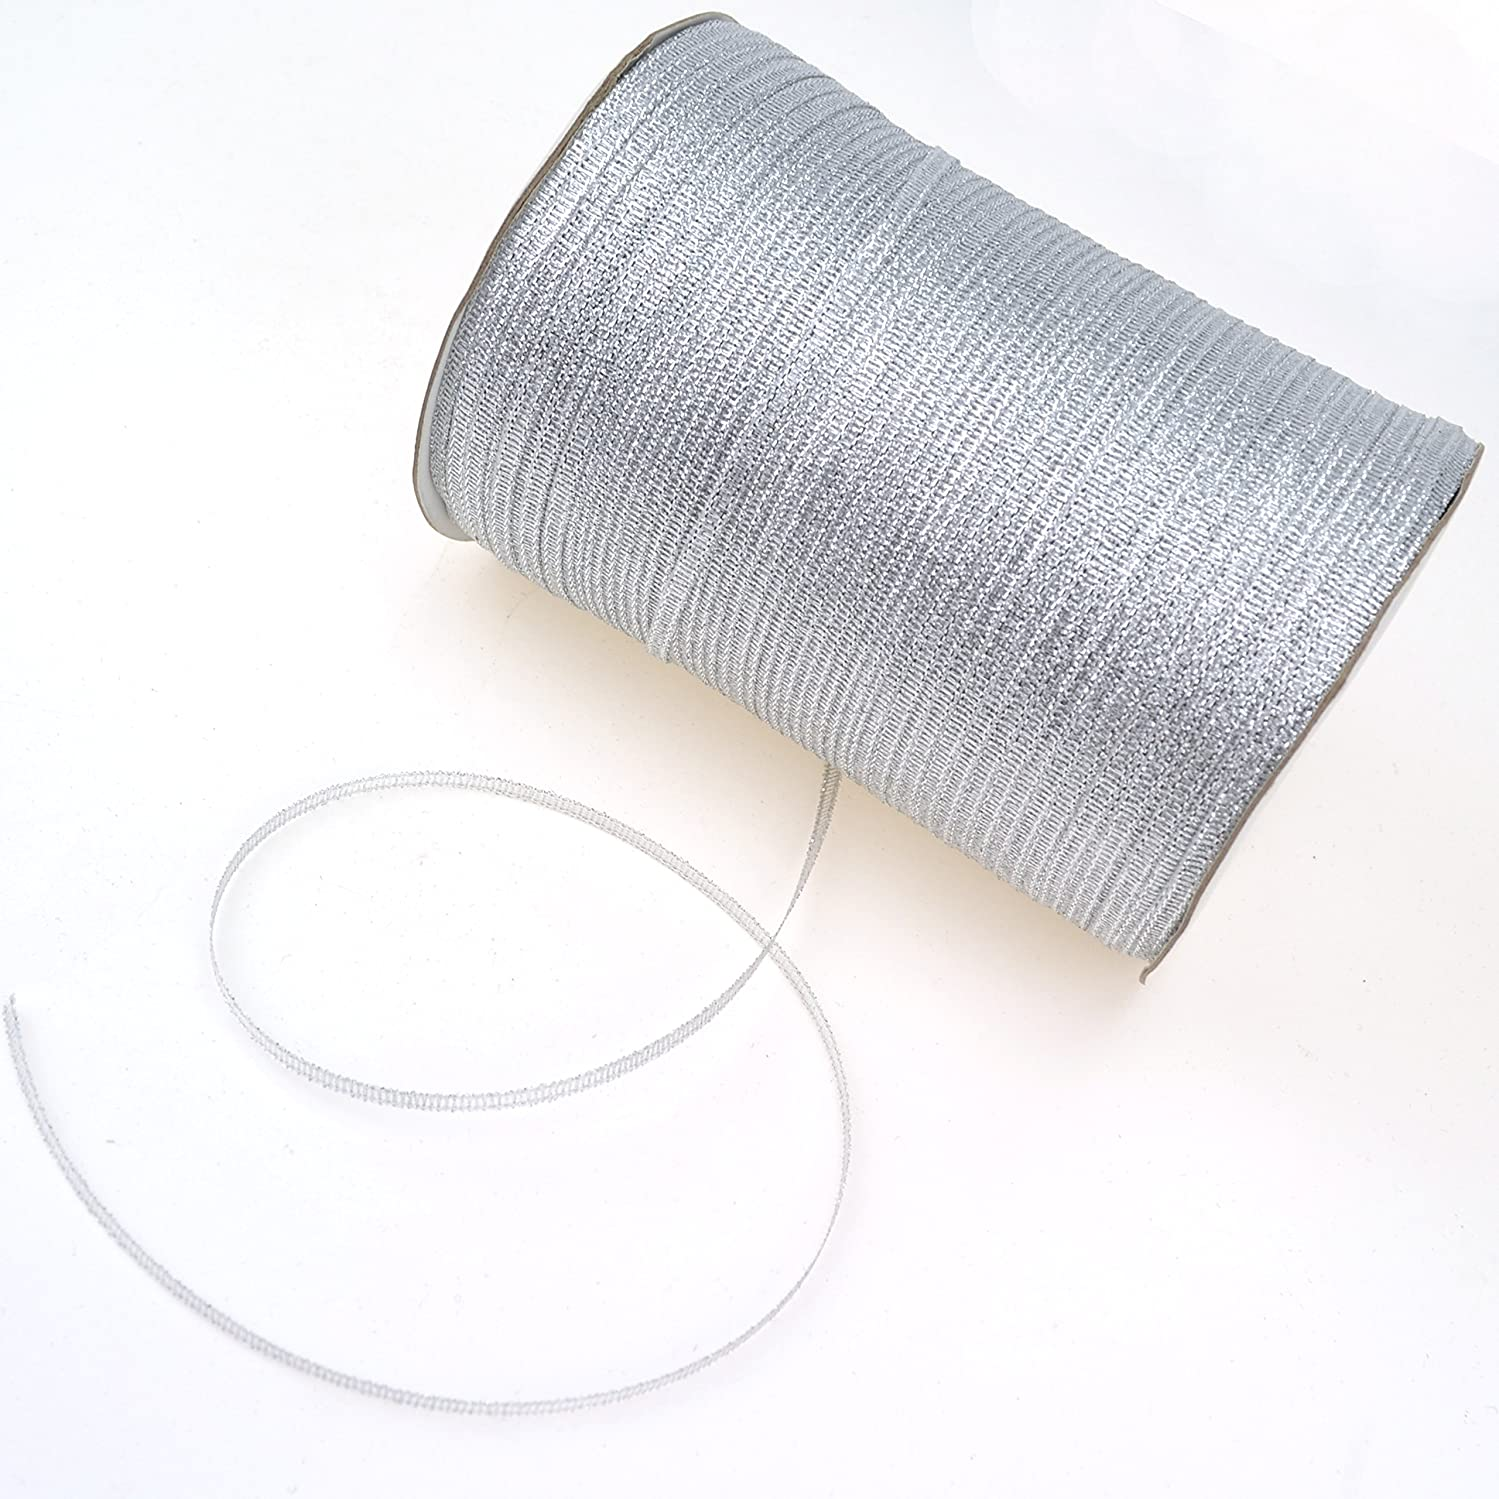 1/8-Inch Satin Ribbon by 870 Yard Spool | 3mm Double Face Woven Polyester Ribbon Hanging Tag&Card for Art Projects | No Fading Scrapbook Fabric Ribbon (1/8-Inch x 870 Yard x 1 Spool, Glitter Silver)